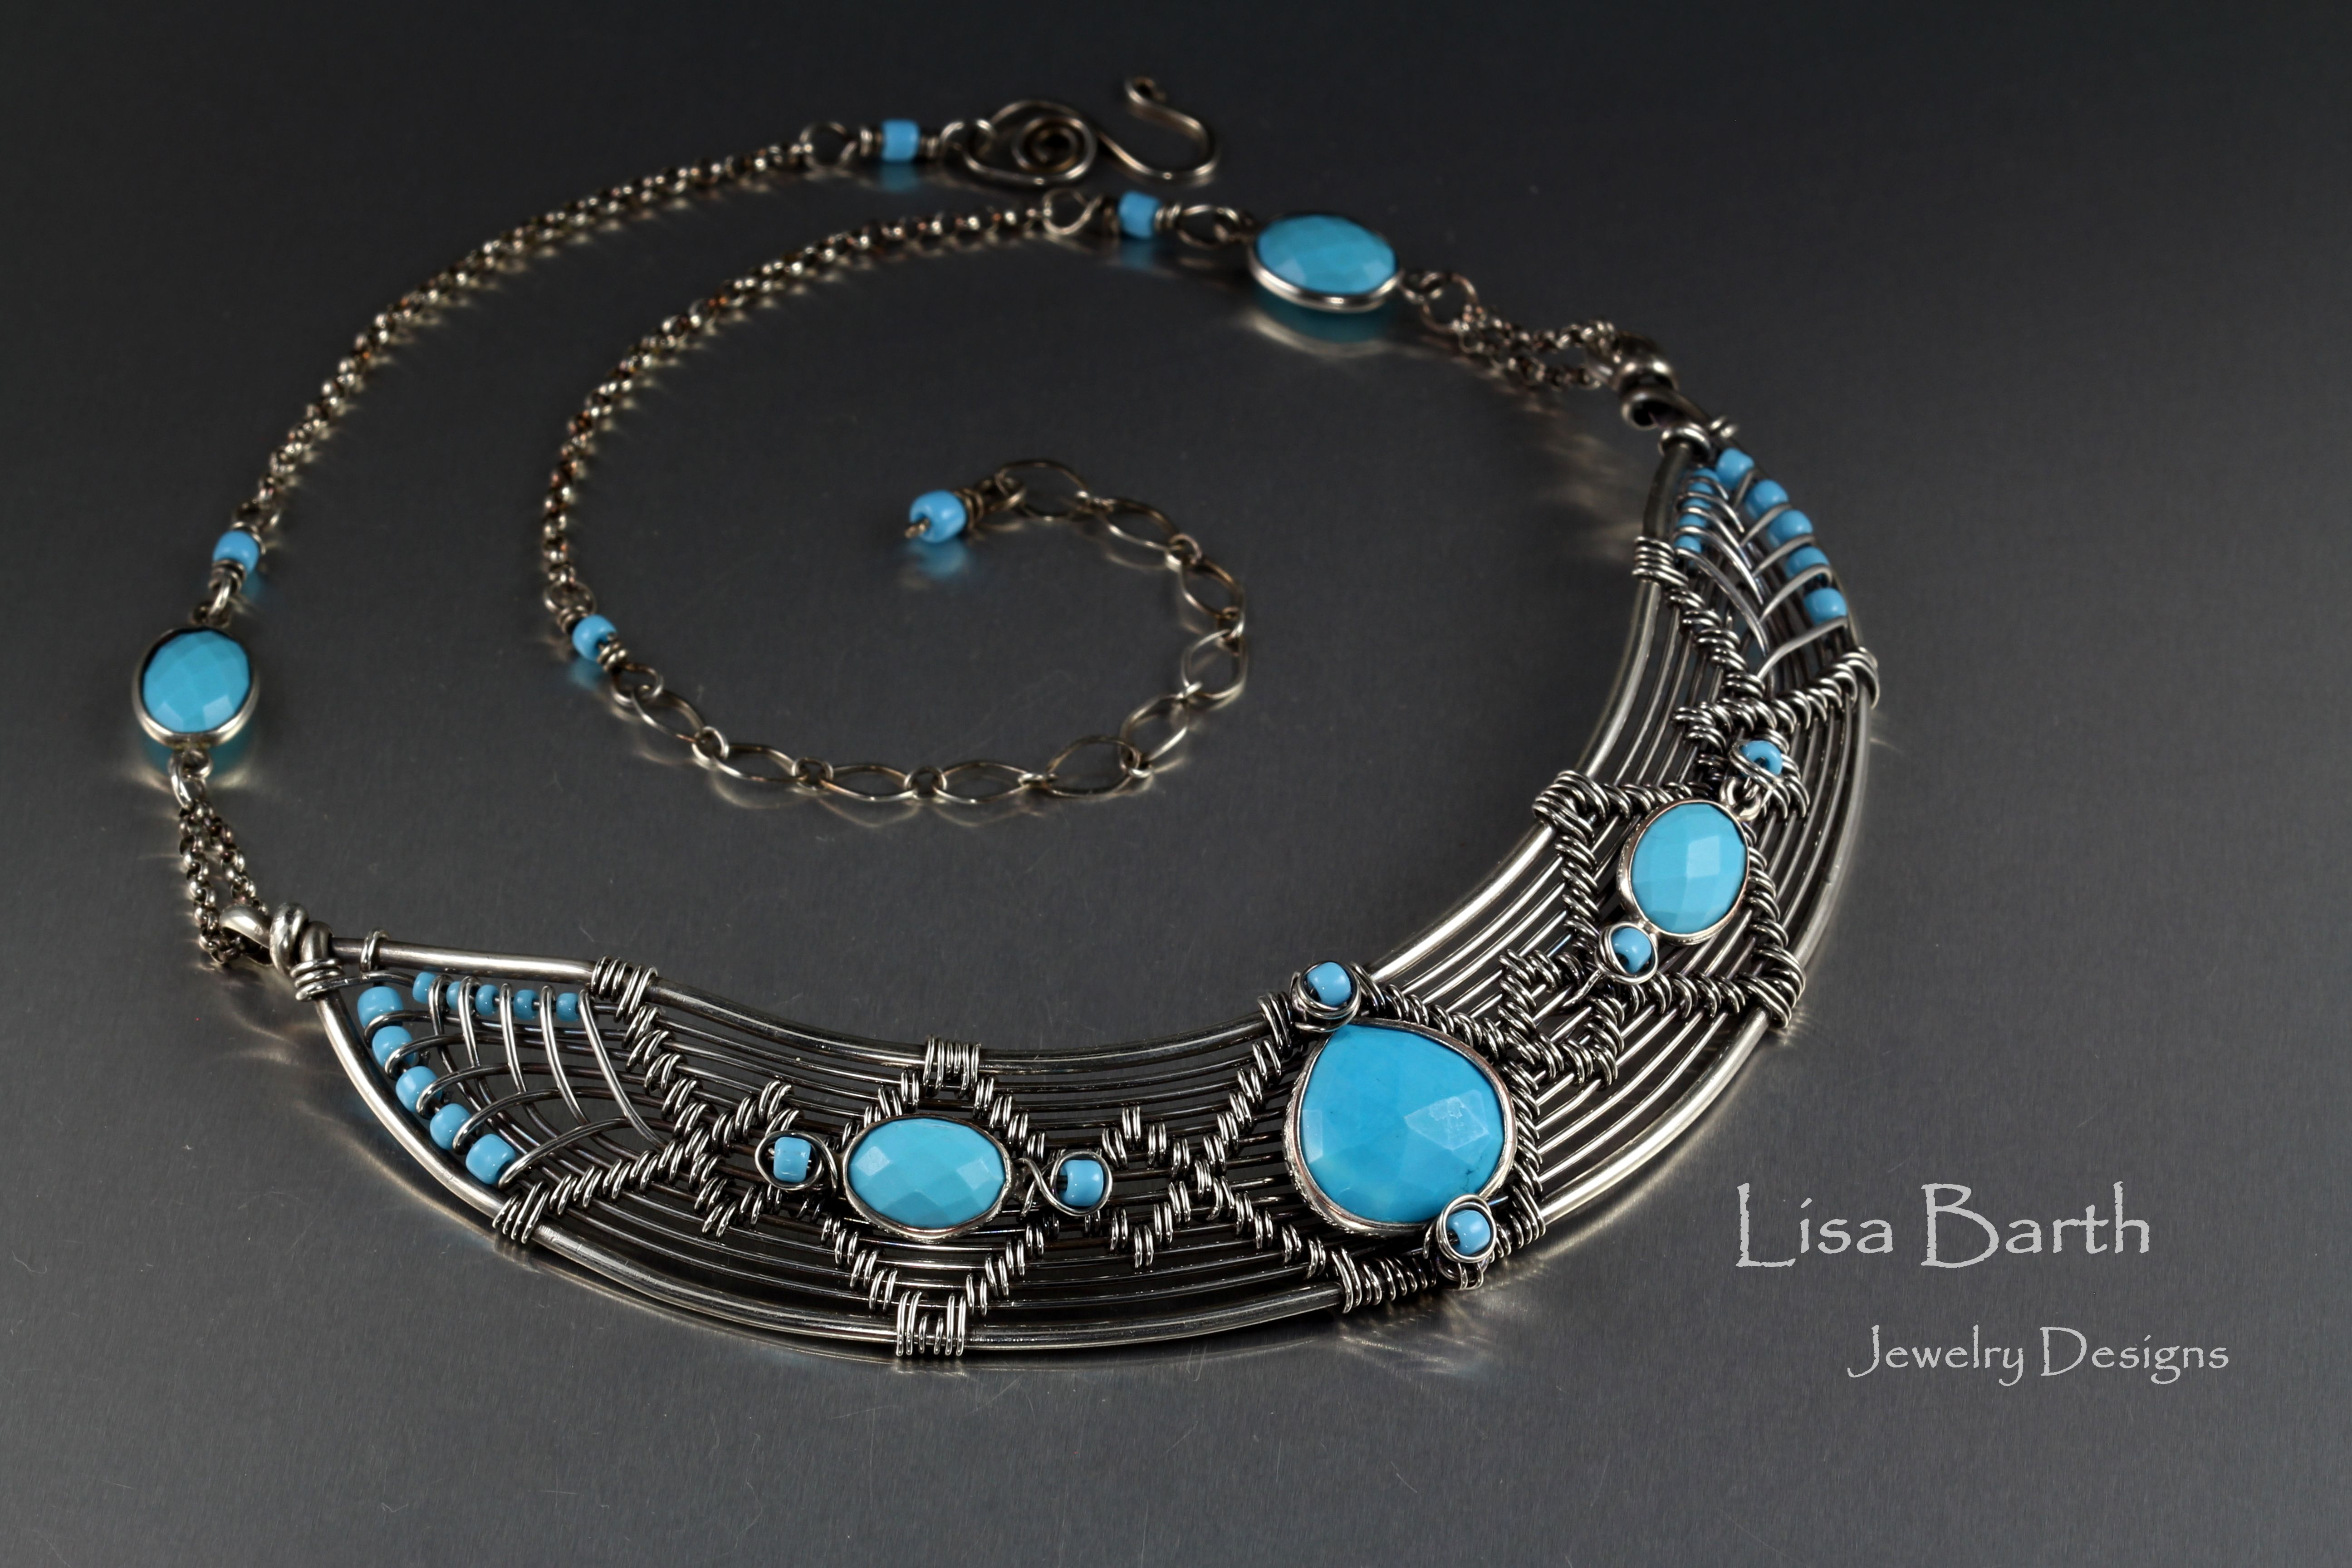 Sterling and Turquoise hand woven necklace, from a bracelet design in my new book, just modified slightly to fit the neckline.